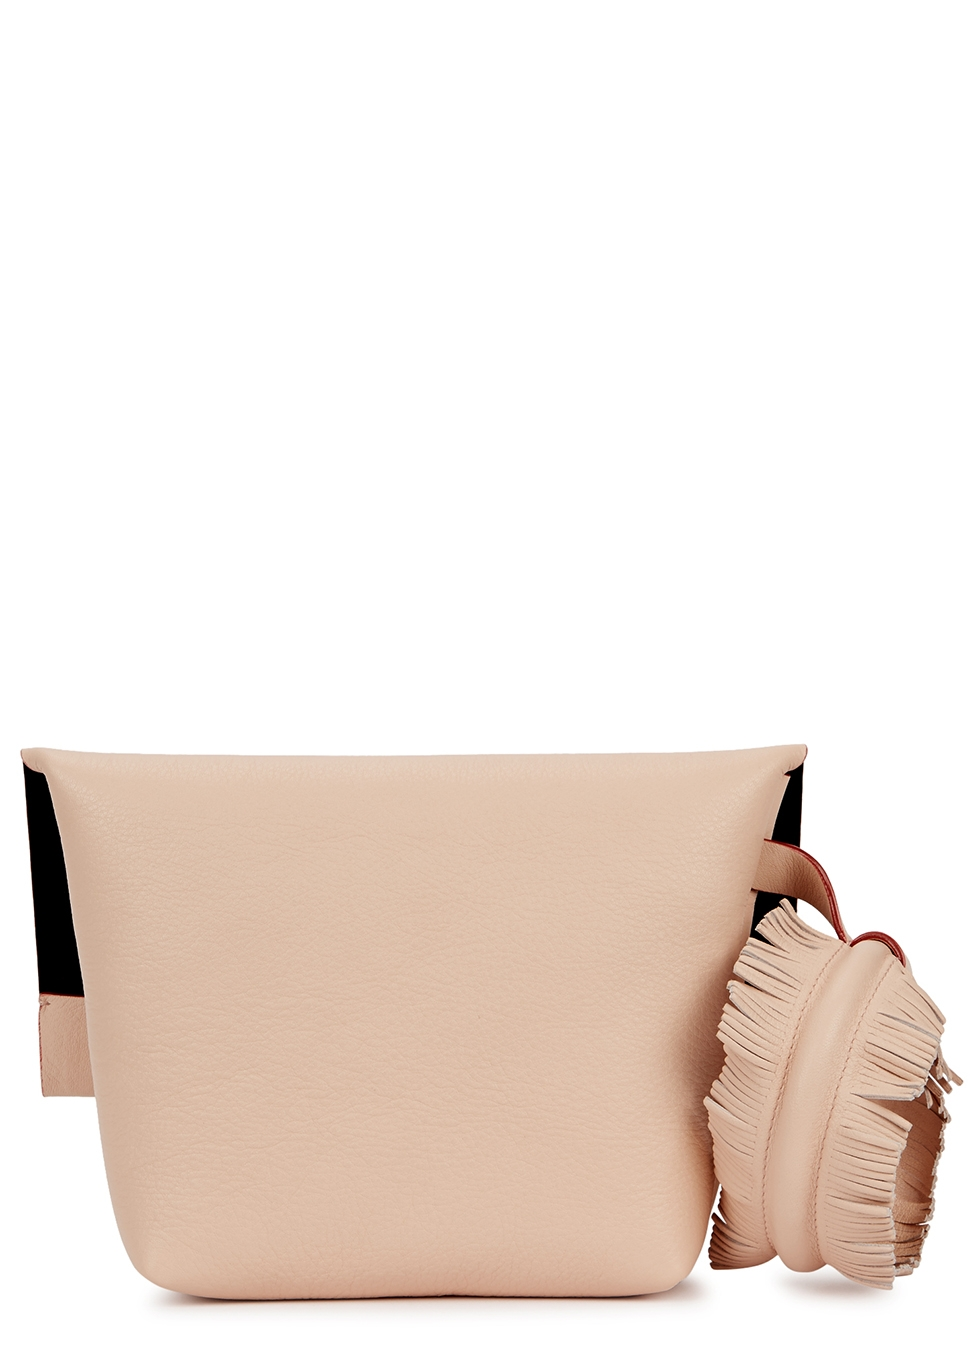 Bunny Touch light-pink leather clutch - Elena Ghisellini